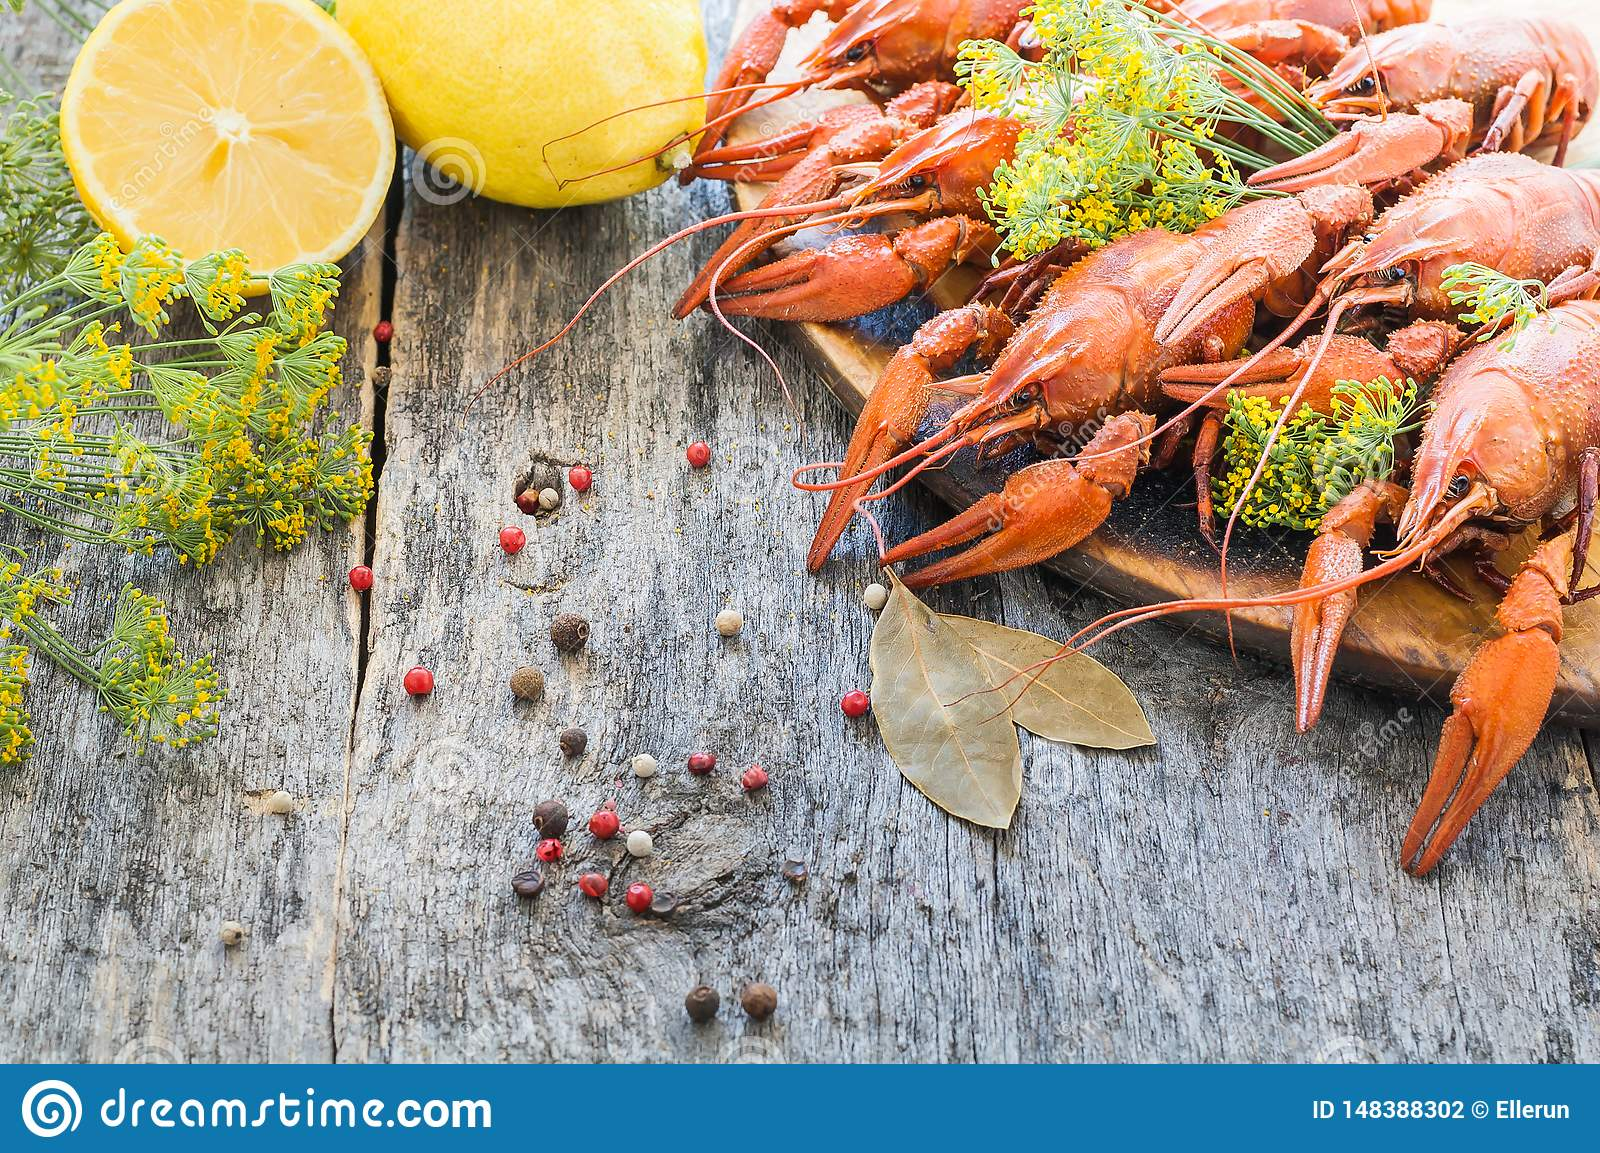 Boiled crawfish with lemon and dill on a wooden background